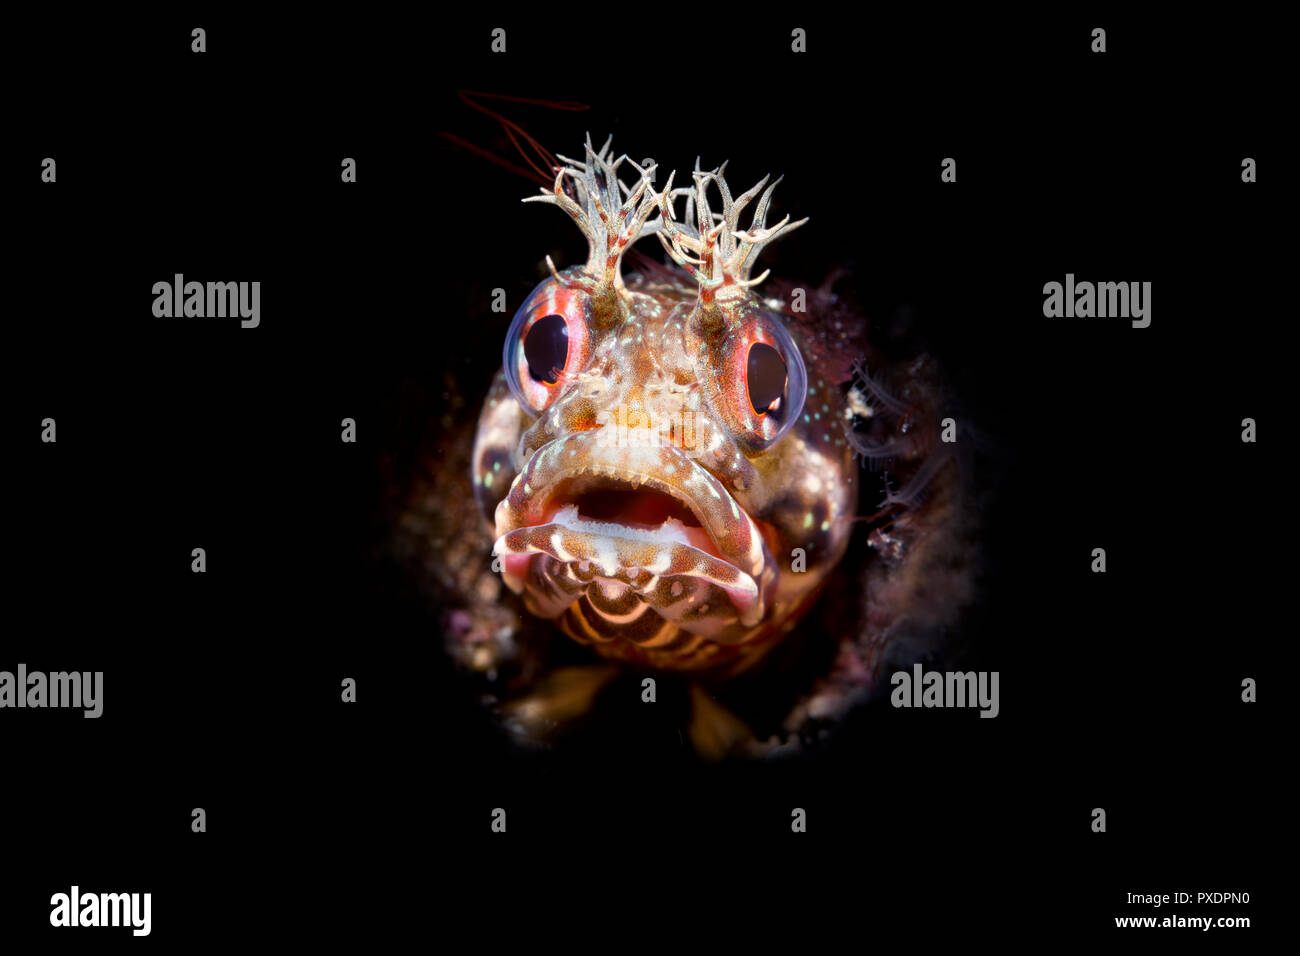 Using special limited beam snoot lighting, I captured this tiny fringe head blenny peering out of a small tube for which the fish lives. - Stock Image